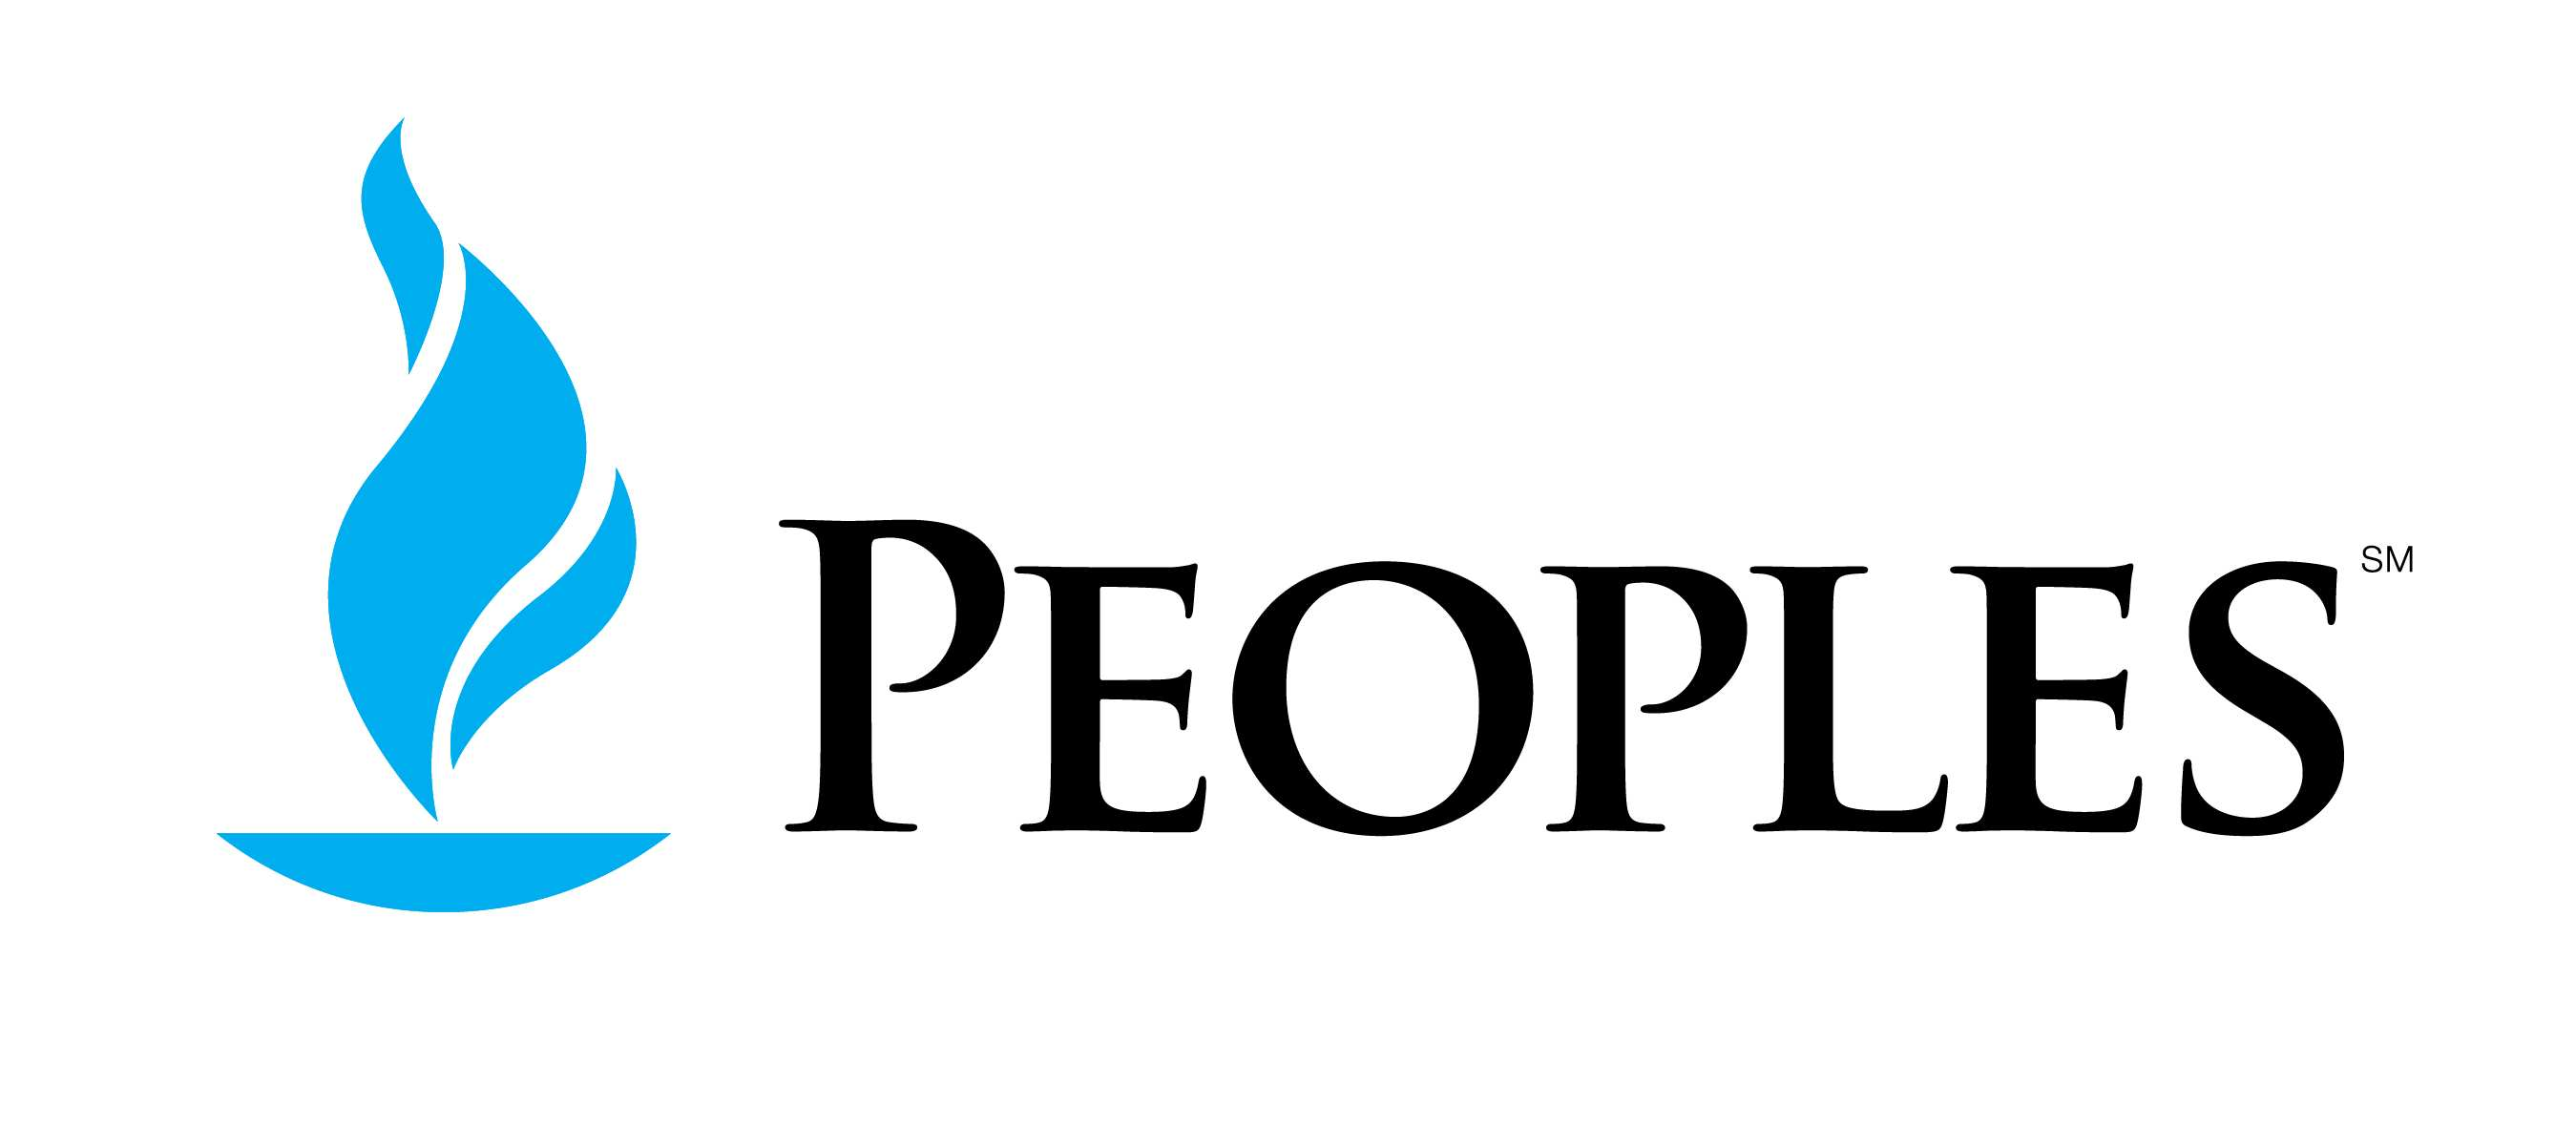 Peoples-logo.jpg